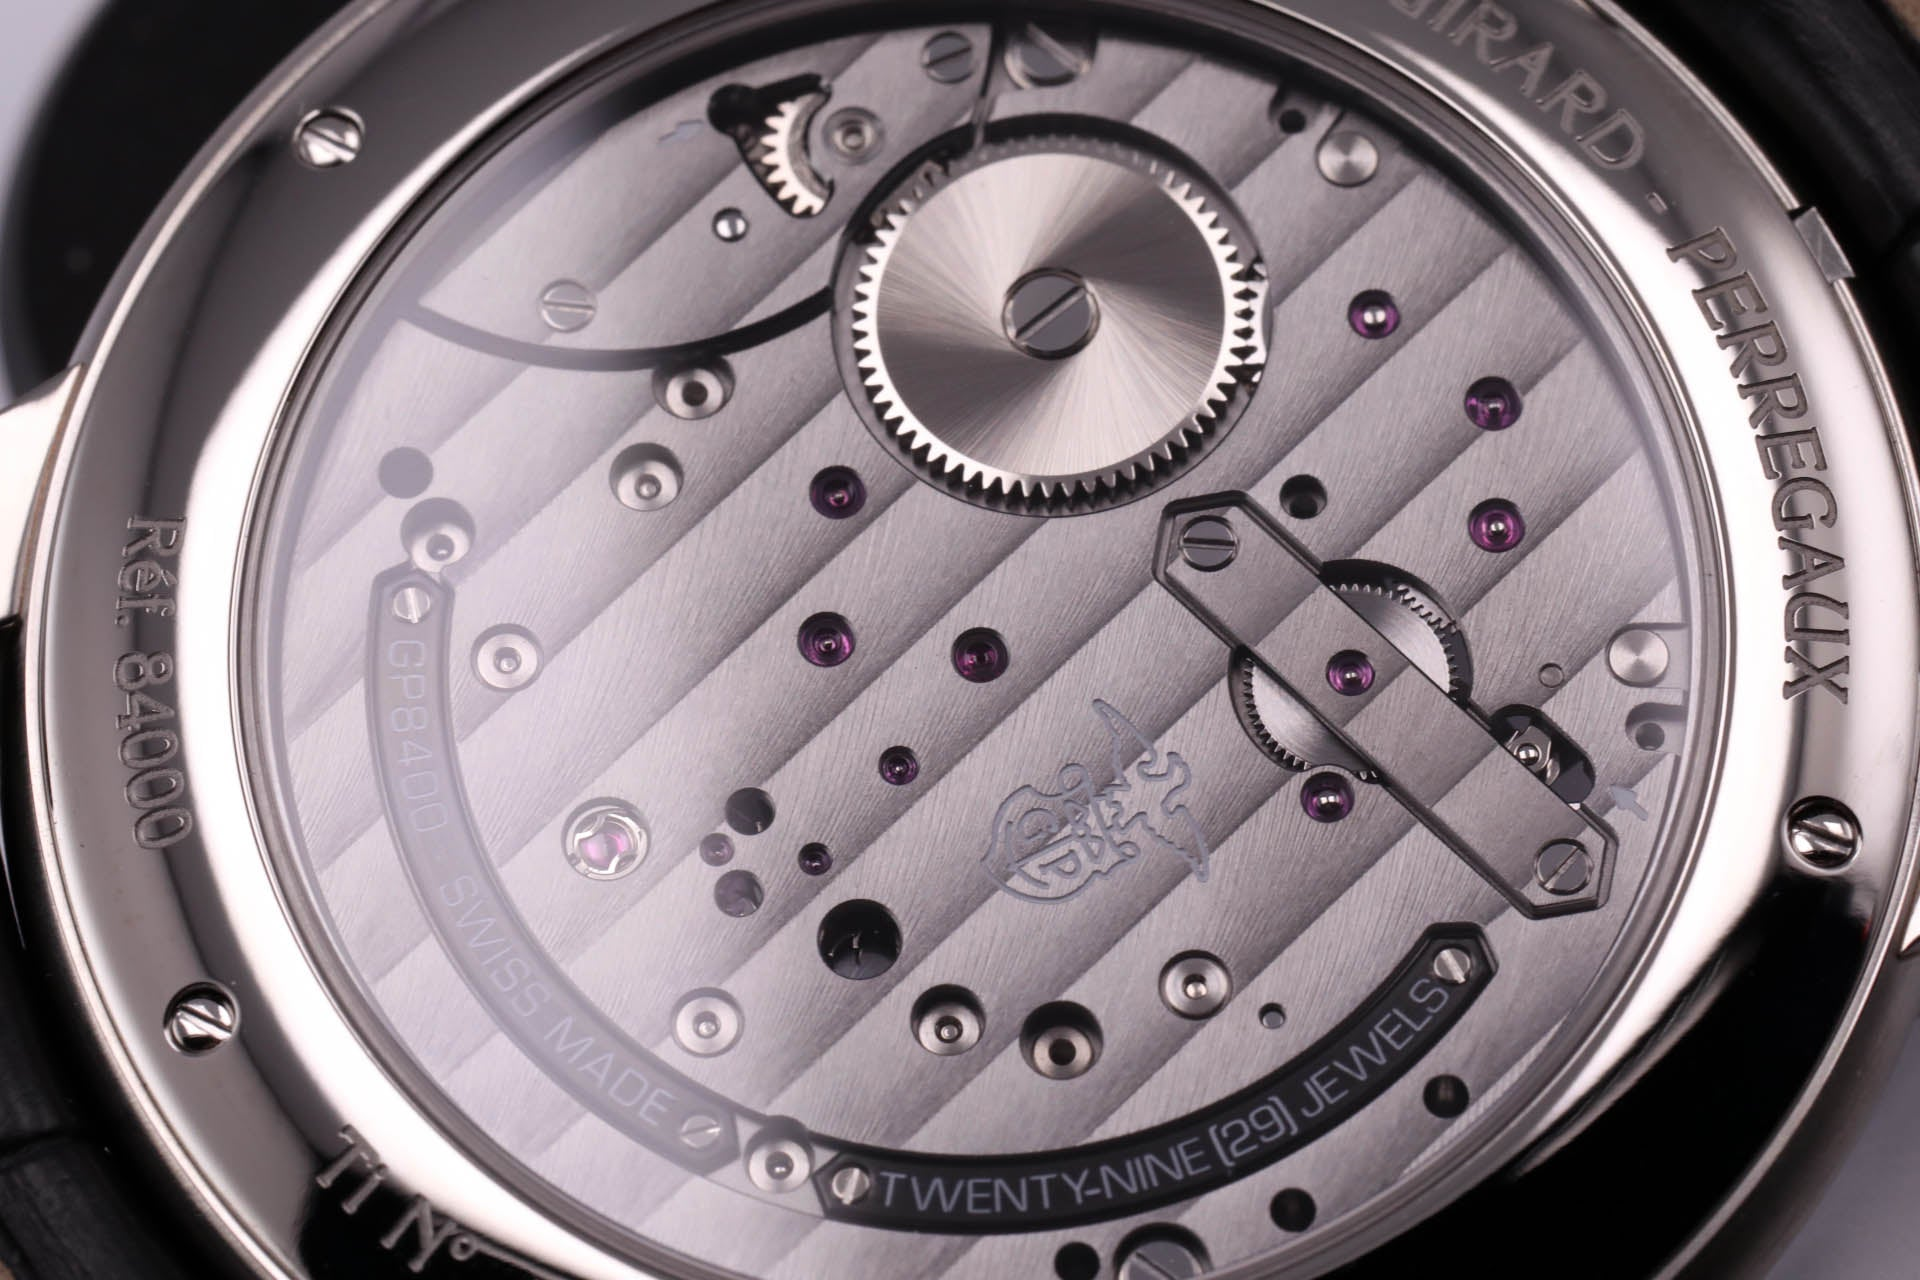 Girard Perregaux Bridges Neo Bridges Automatic (inspired Neo-Tourbillon)